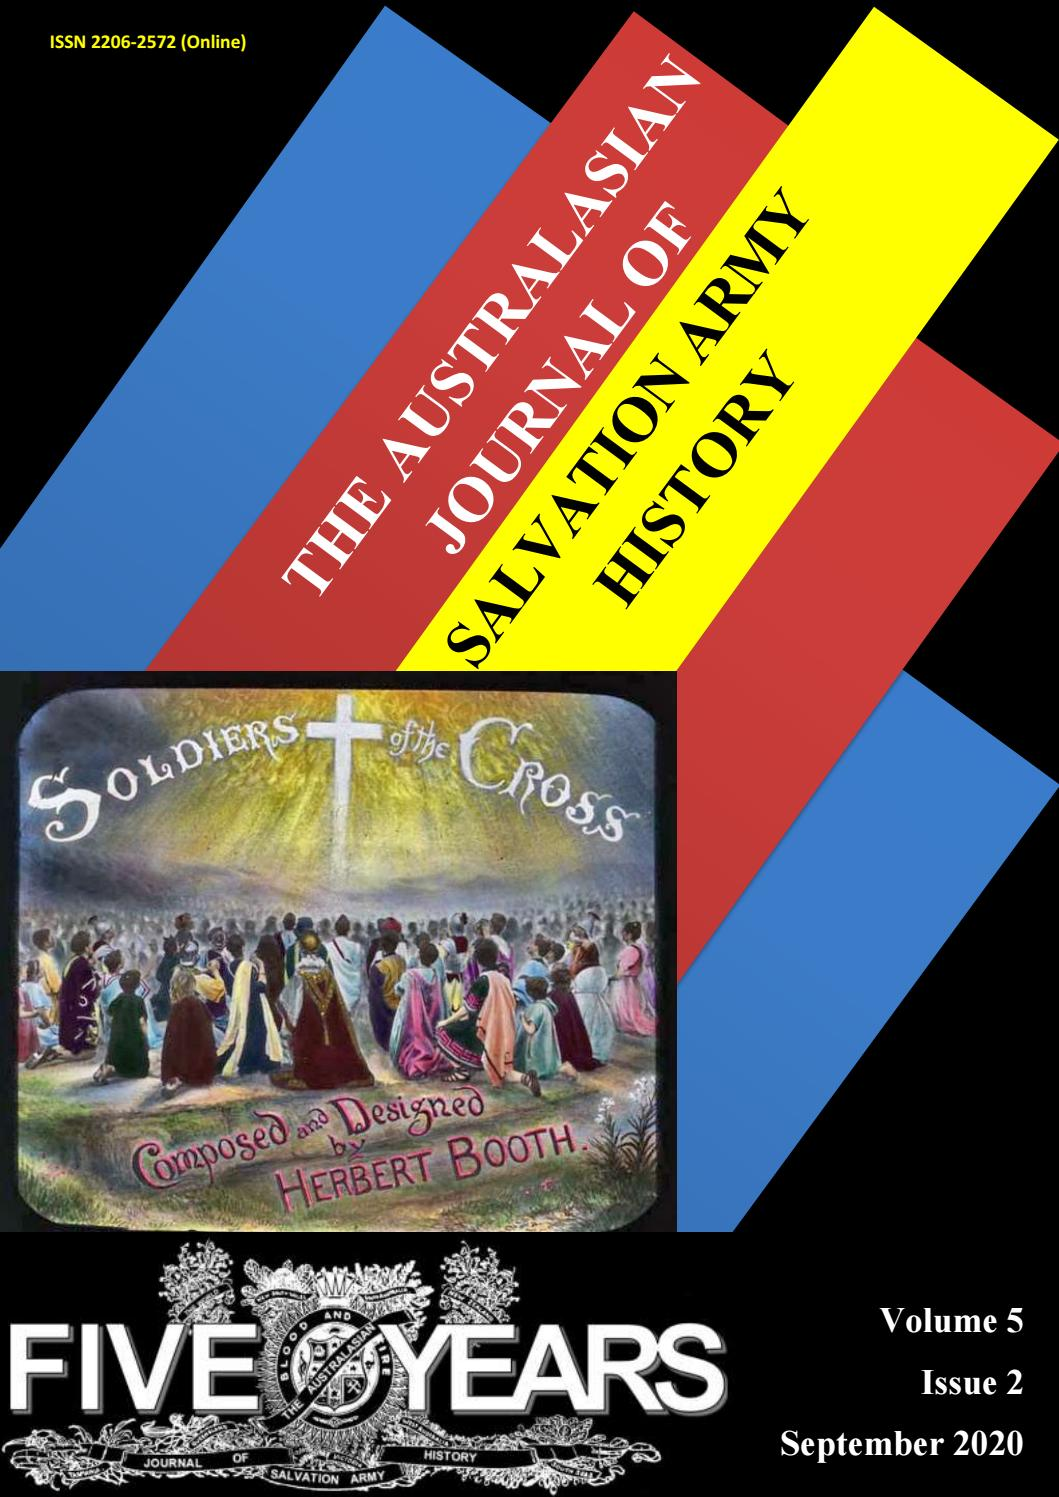 Australasian Journal Of Salvation Army History Volume 5 Issue 2 By The Salvation Army Issuu